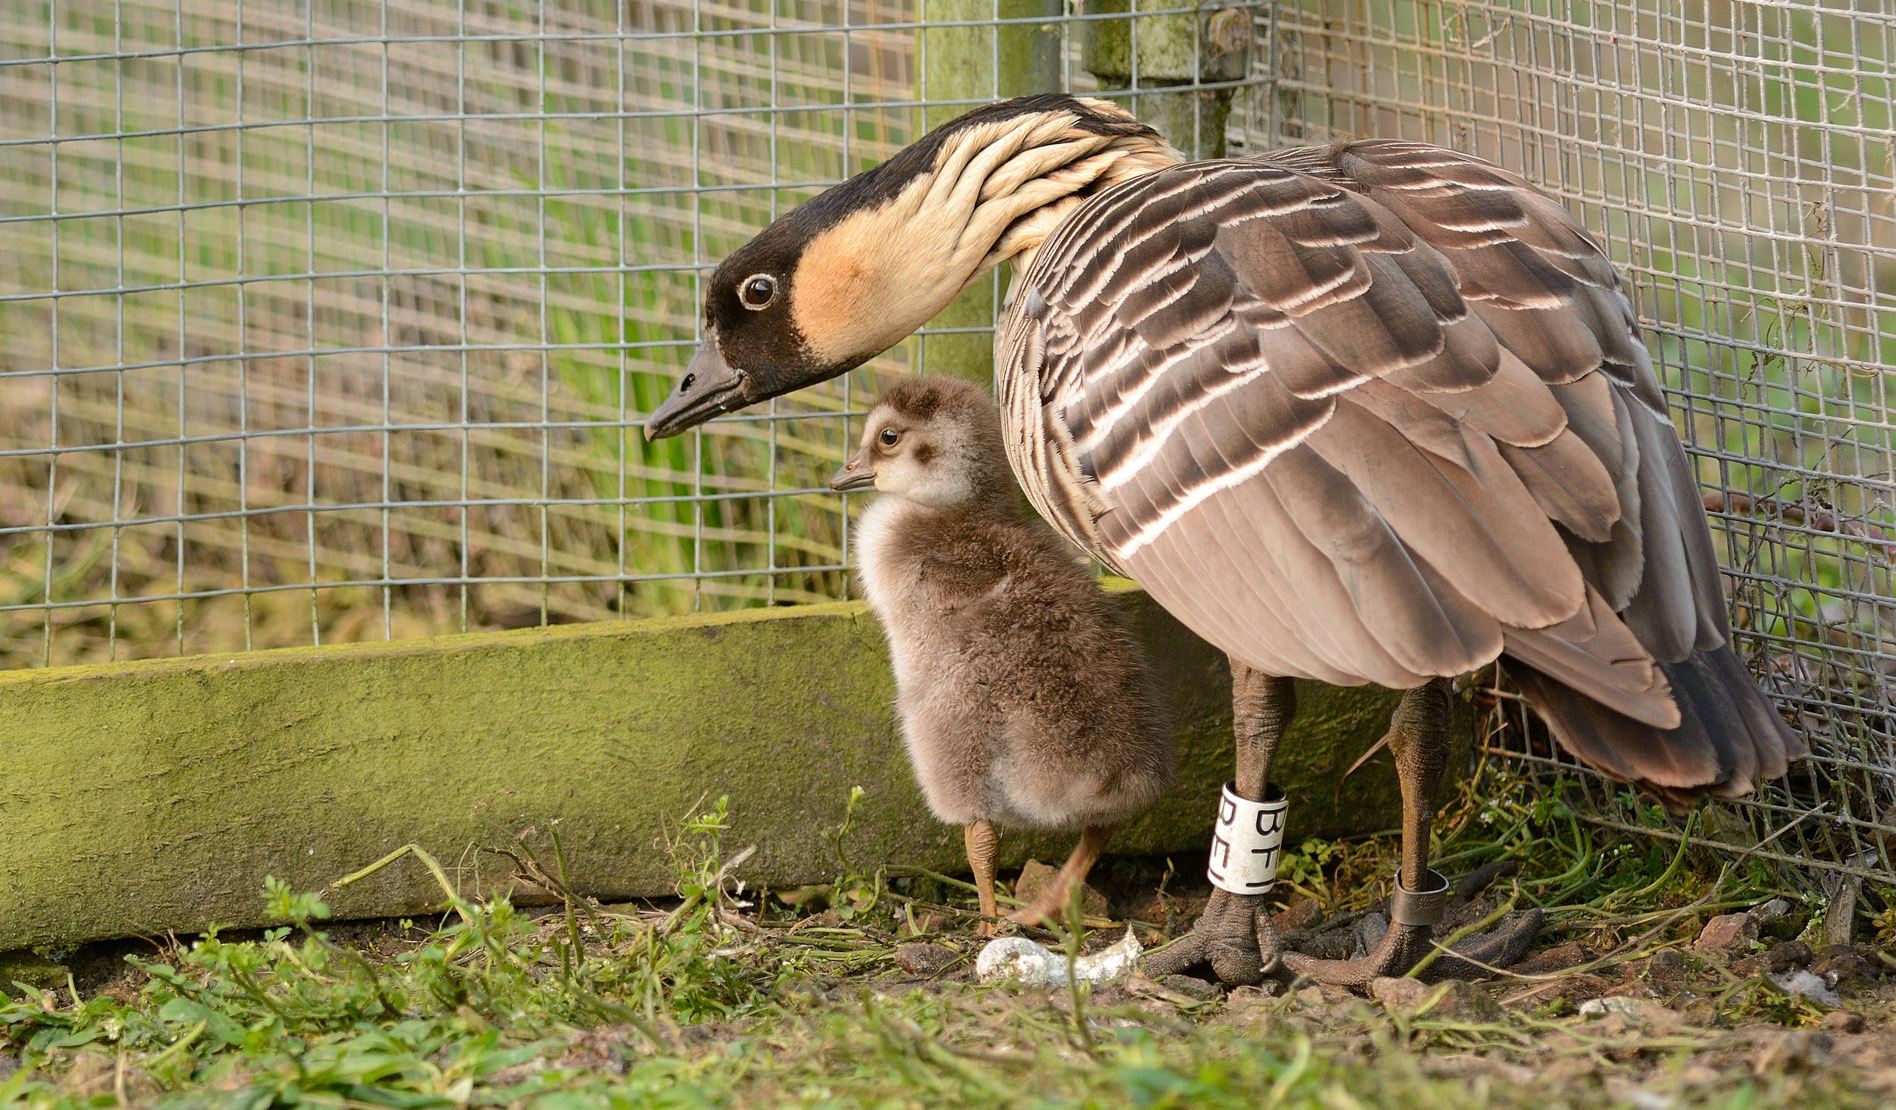 Wardens at WWT Martin Mere Wetland Centre are celebrating an early Easter present after one rare Nene gosling recently hatched in mid-March.        Only about 1,000 Nenes – pronounced 'nay-nay' after their call – survive in the wild in their native Hawaii. The gosling , born on 17 March, has spent...